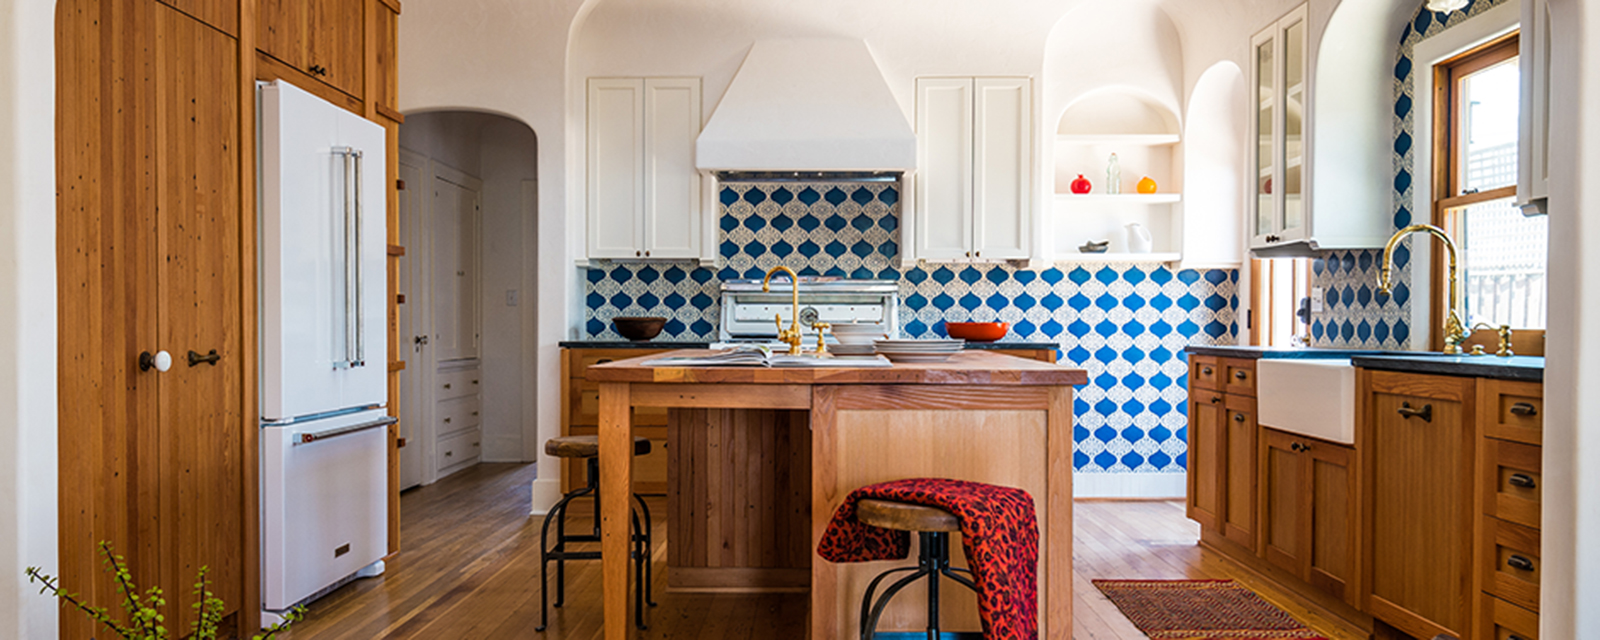 Small Enclosed Kitchen Design Moroccan Flair Kitchen Bath Business